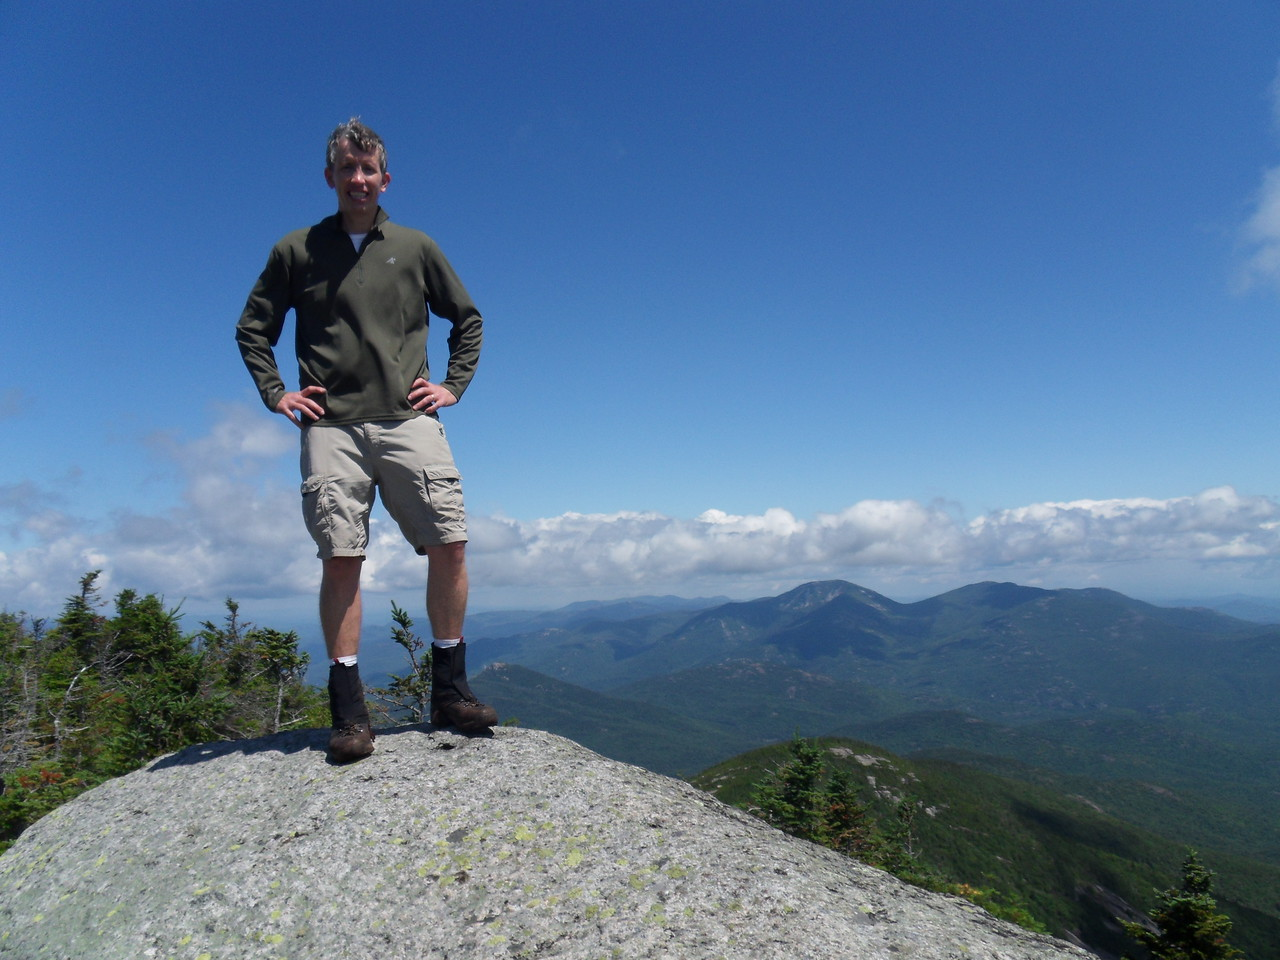 Ray at the summit of Dix. This was quite an amazing peak. Came to a high point with 360° views.